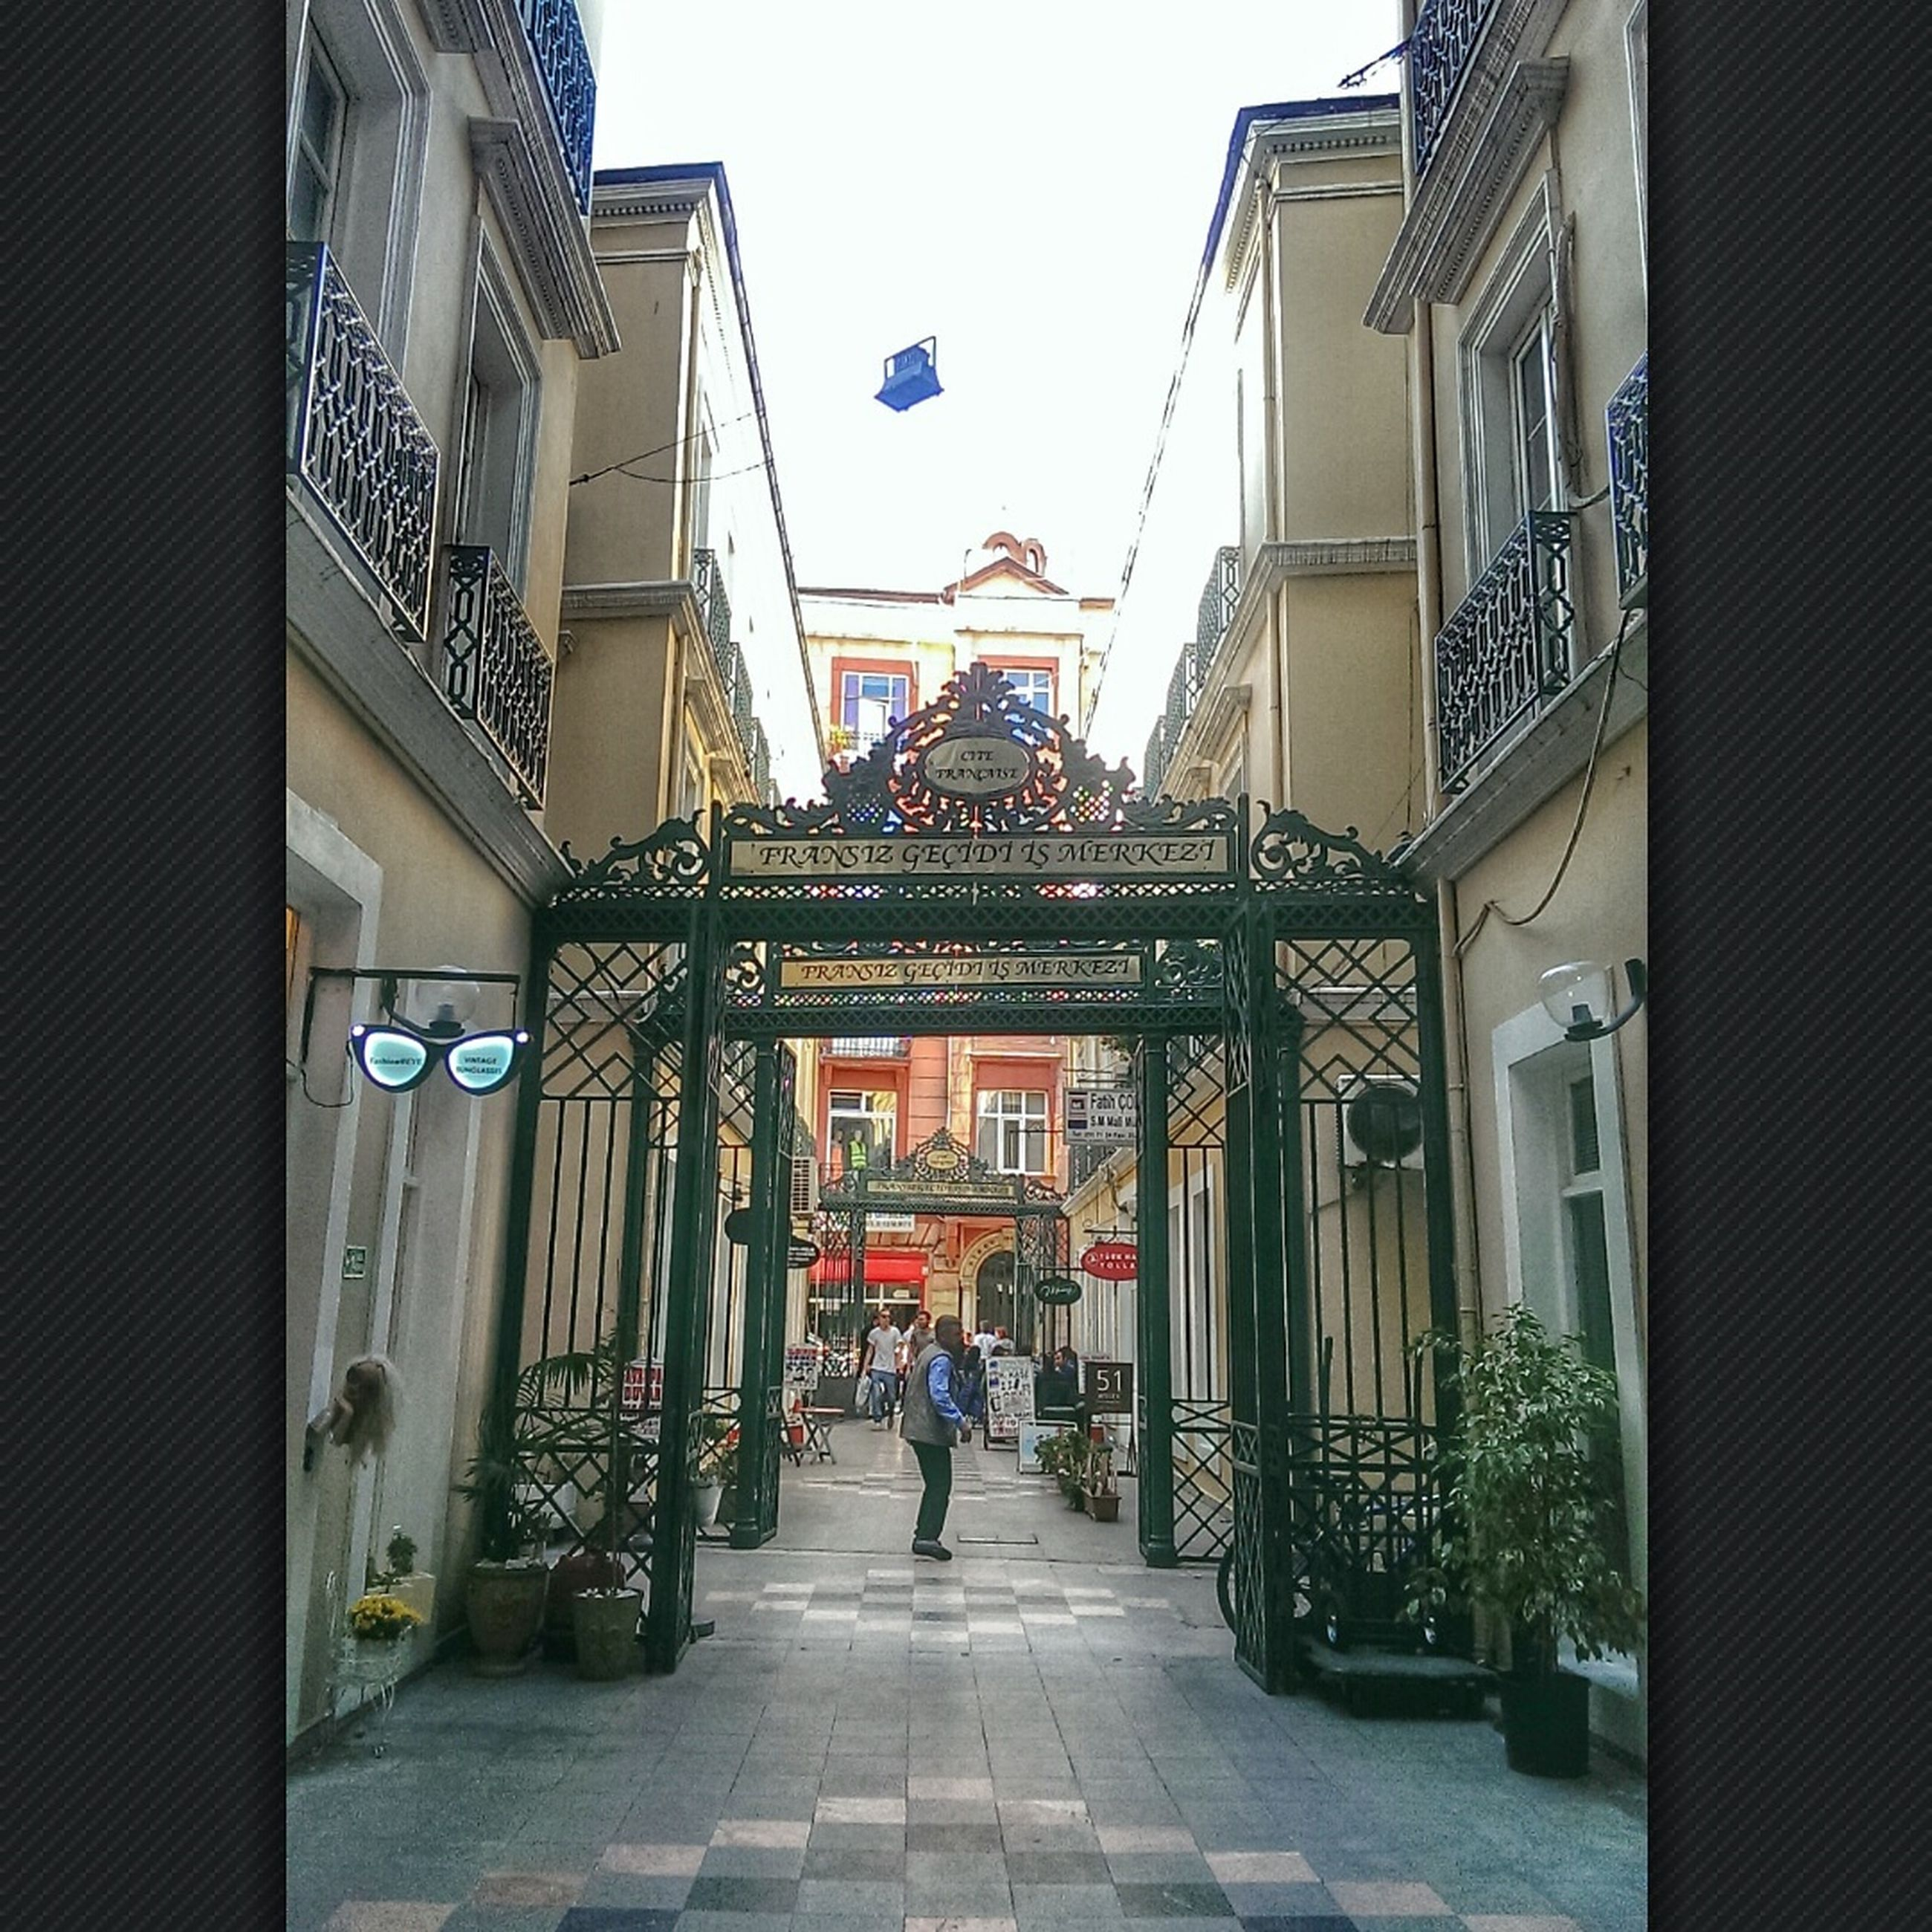 architecture, built structure, building exterior, the way forward, street, city, building, residential building, incidental people, diminishing perspective, day, clear sky, residential structure, outdoors, cobblestone, entrance, bicycle, city life, alley, house